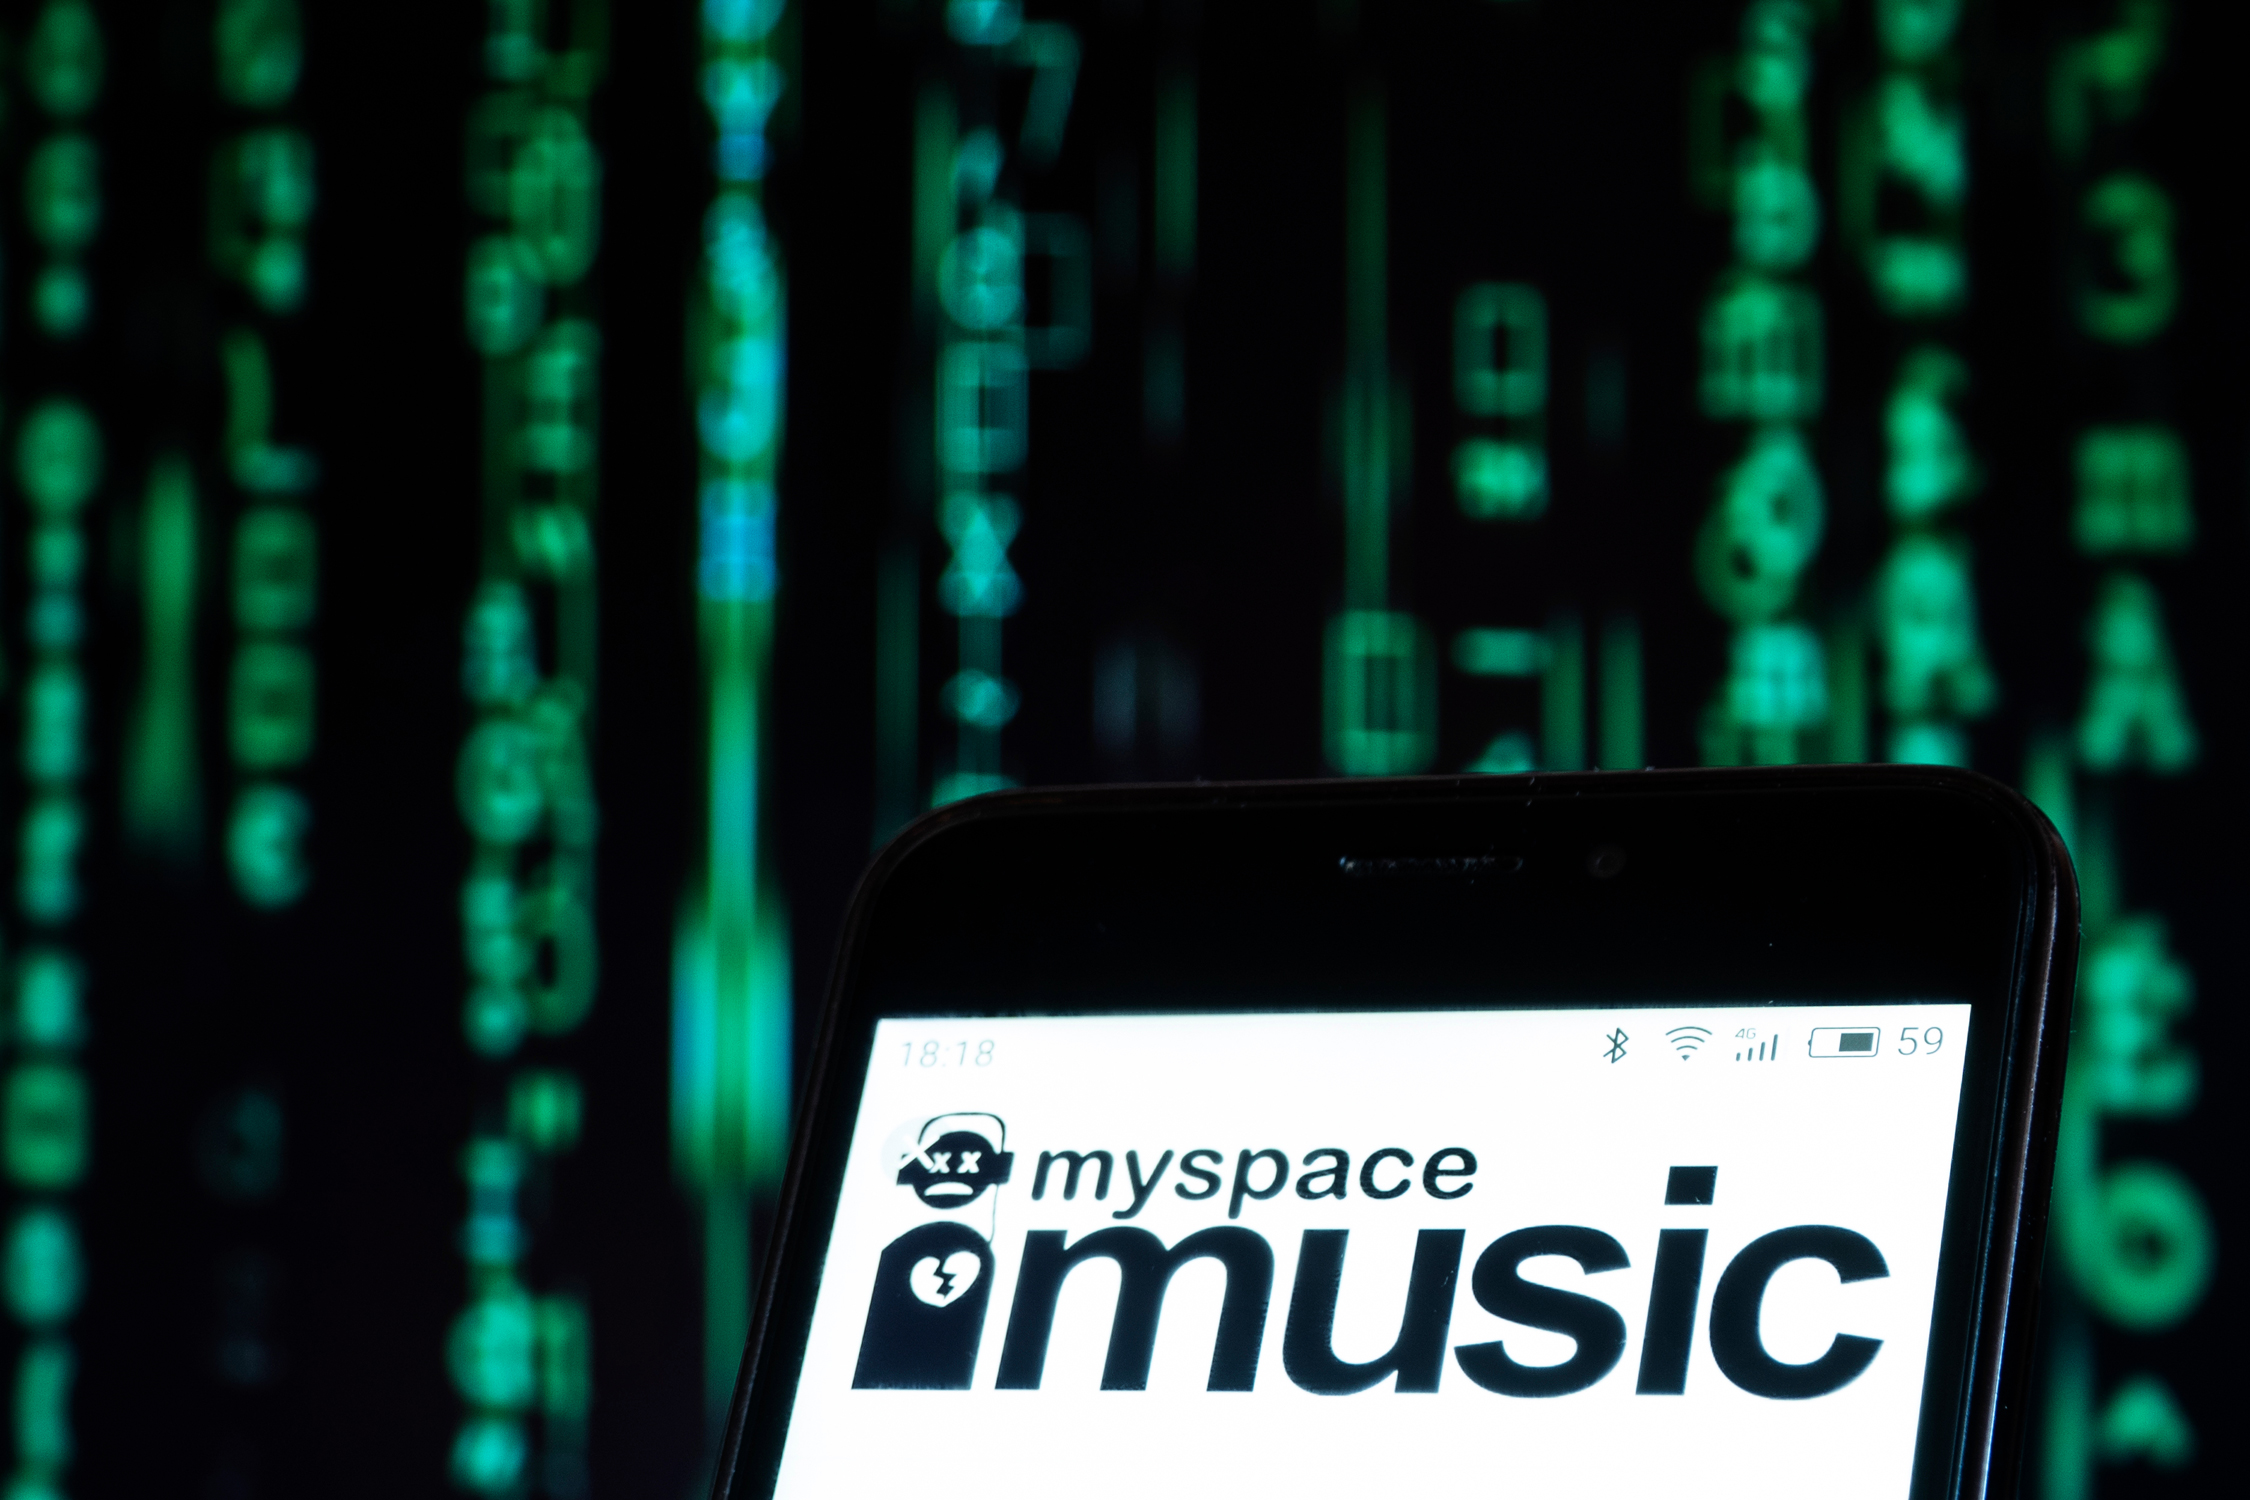 Myspace Lost All Music Uploaded to Site Prior to 2015